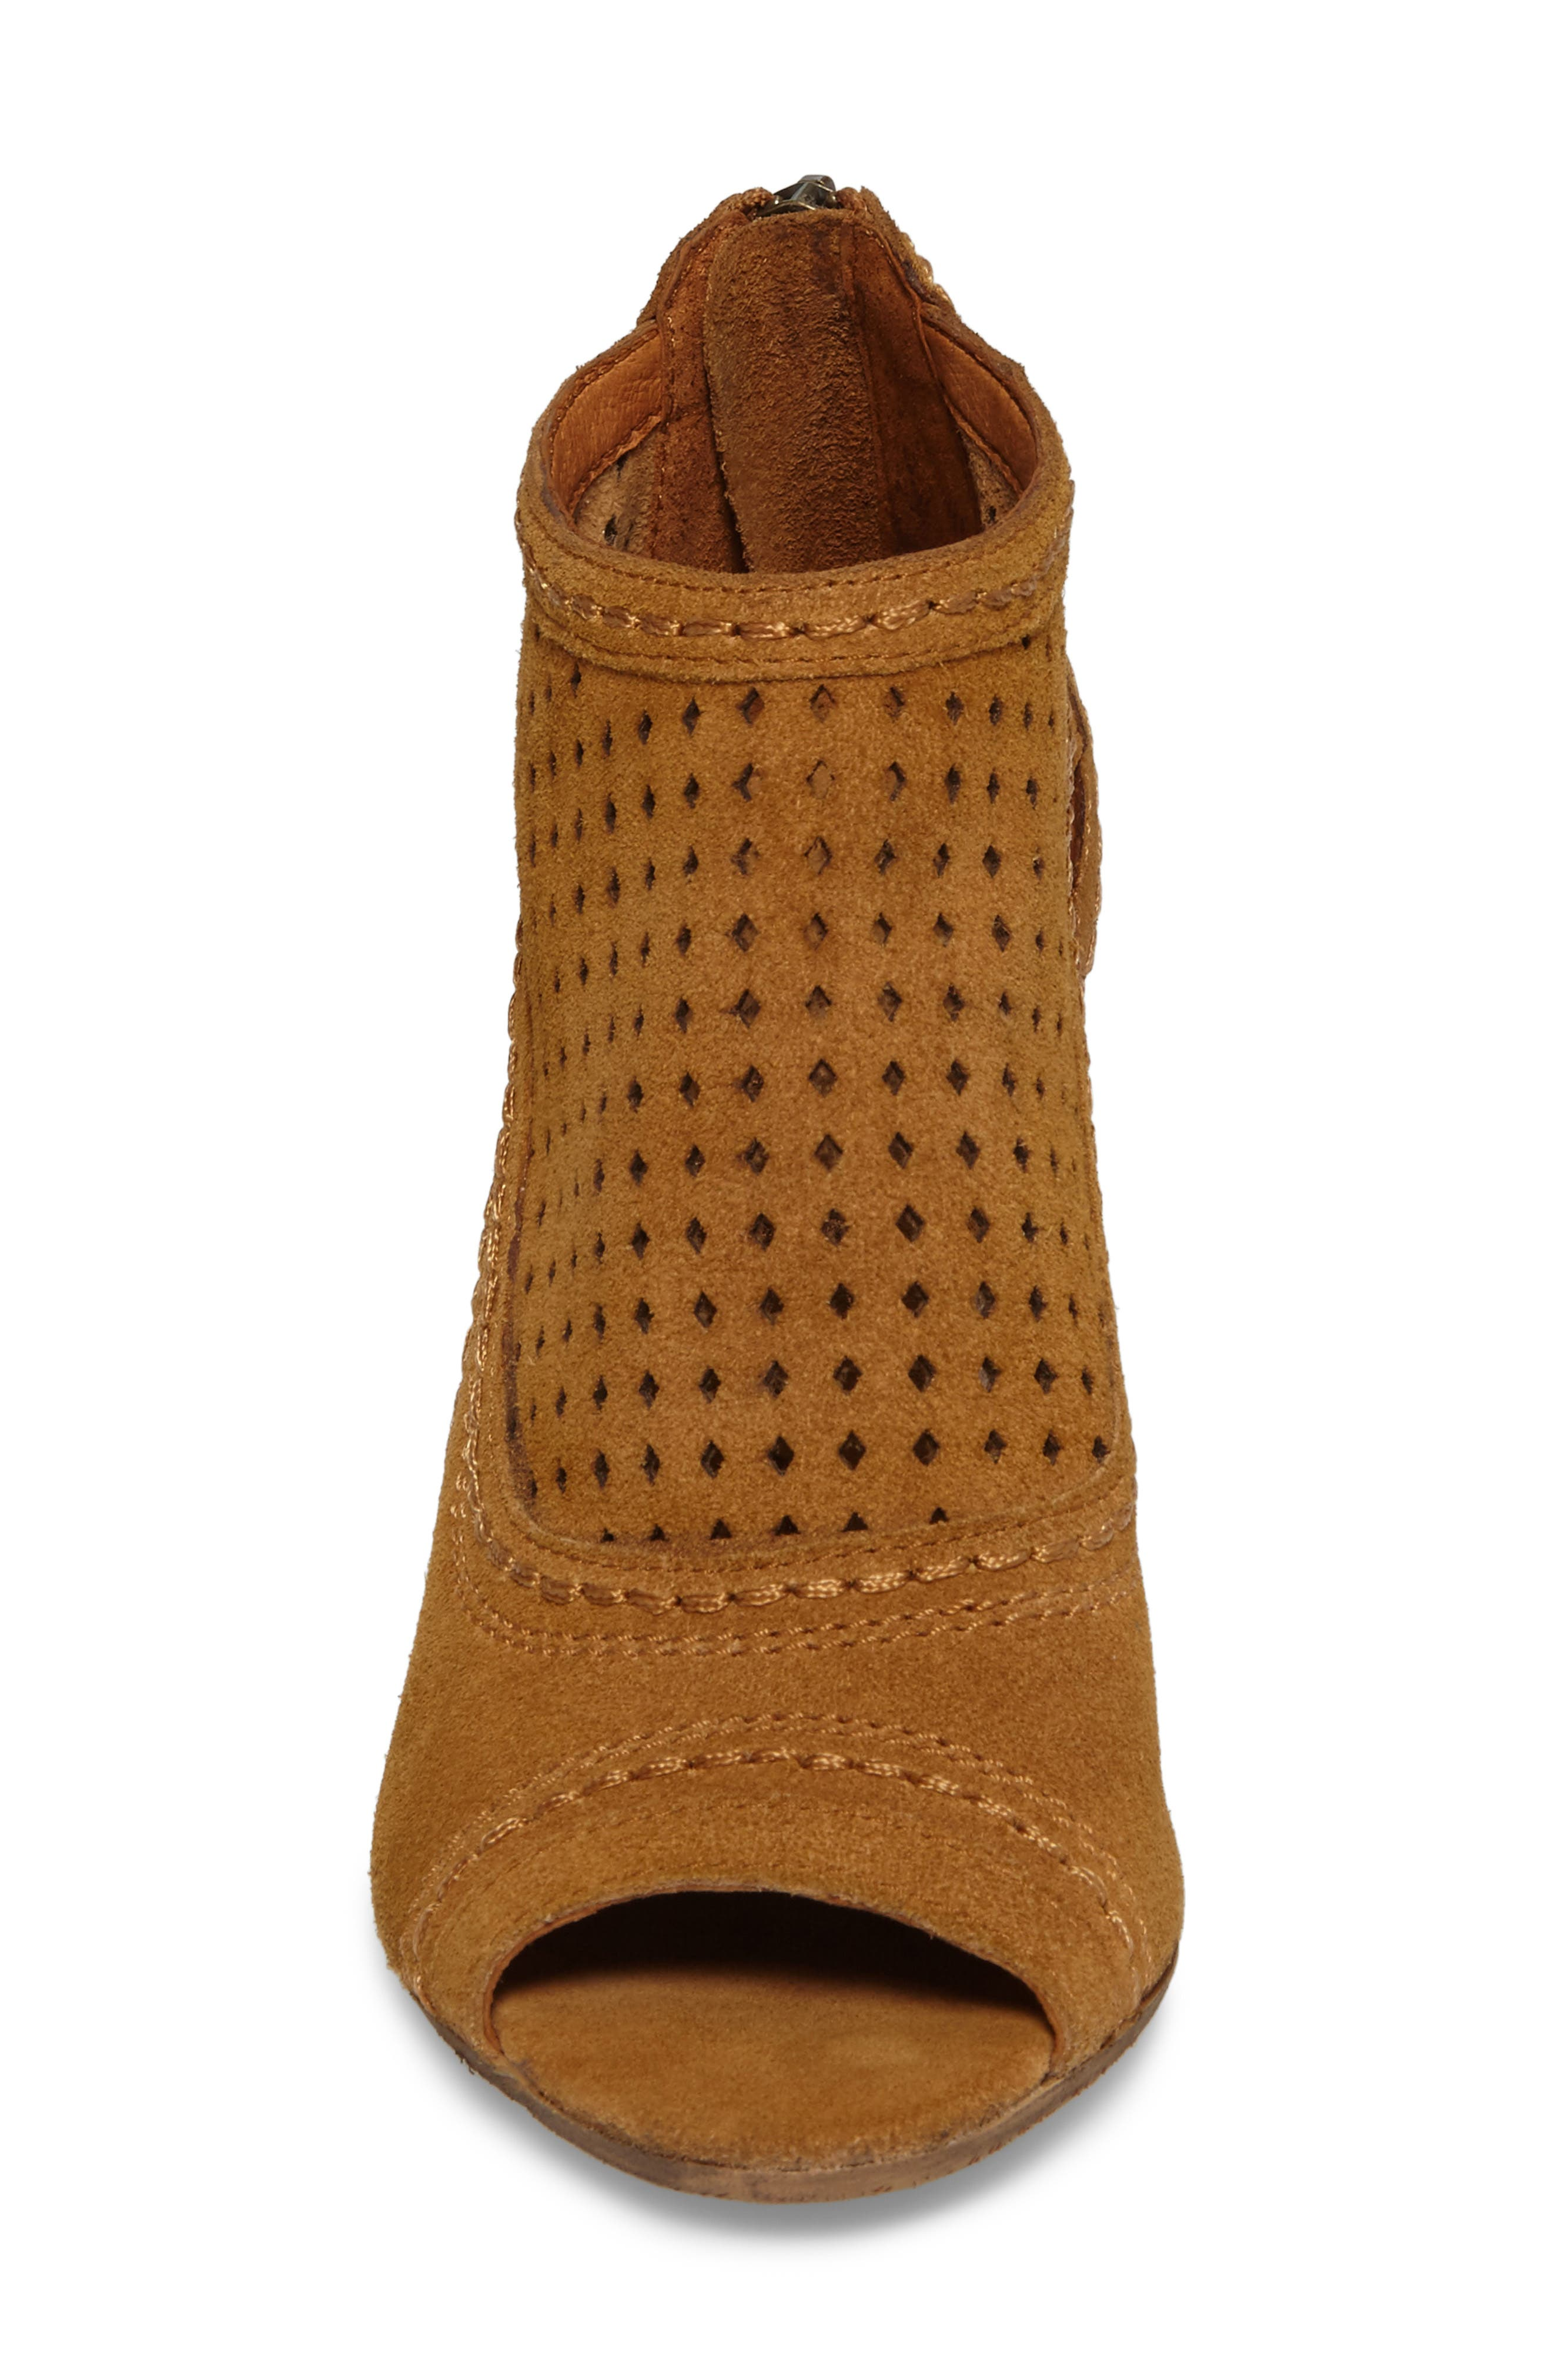 Sharon Perforated Wedge Sandal,                             Alternate thumbnail 4, color,                             Sandcastle Suede